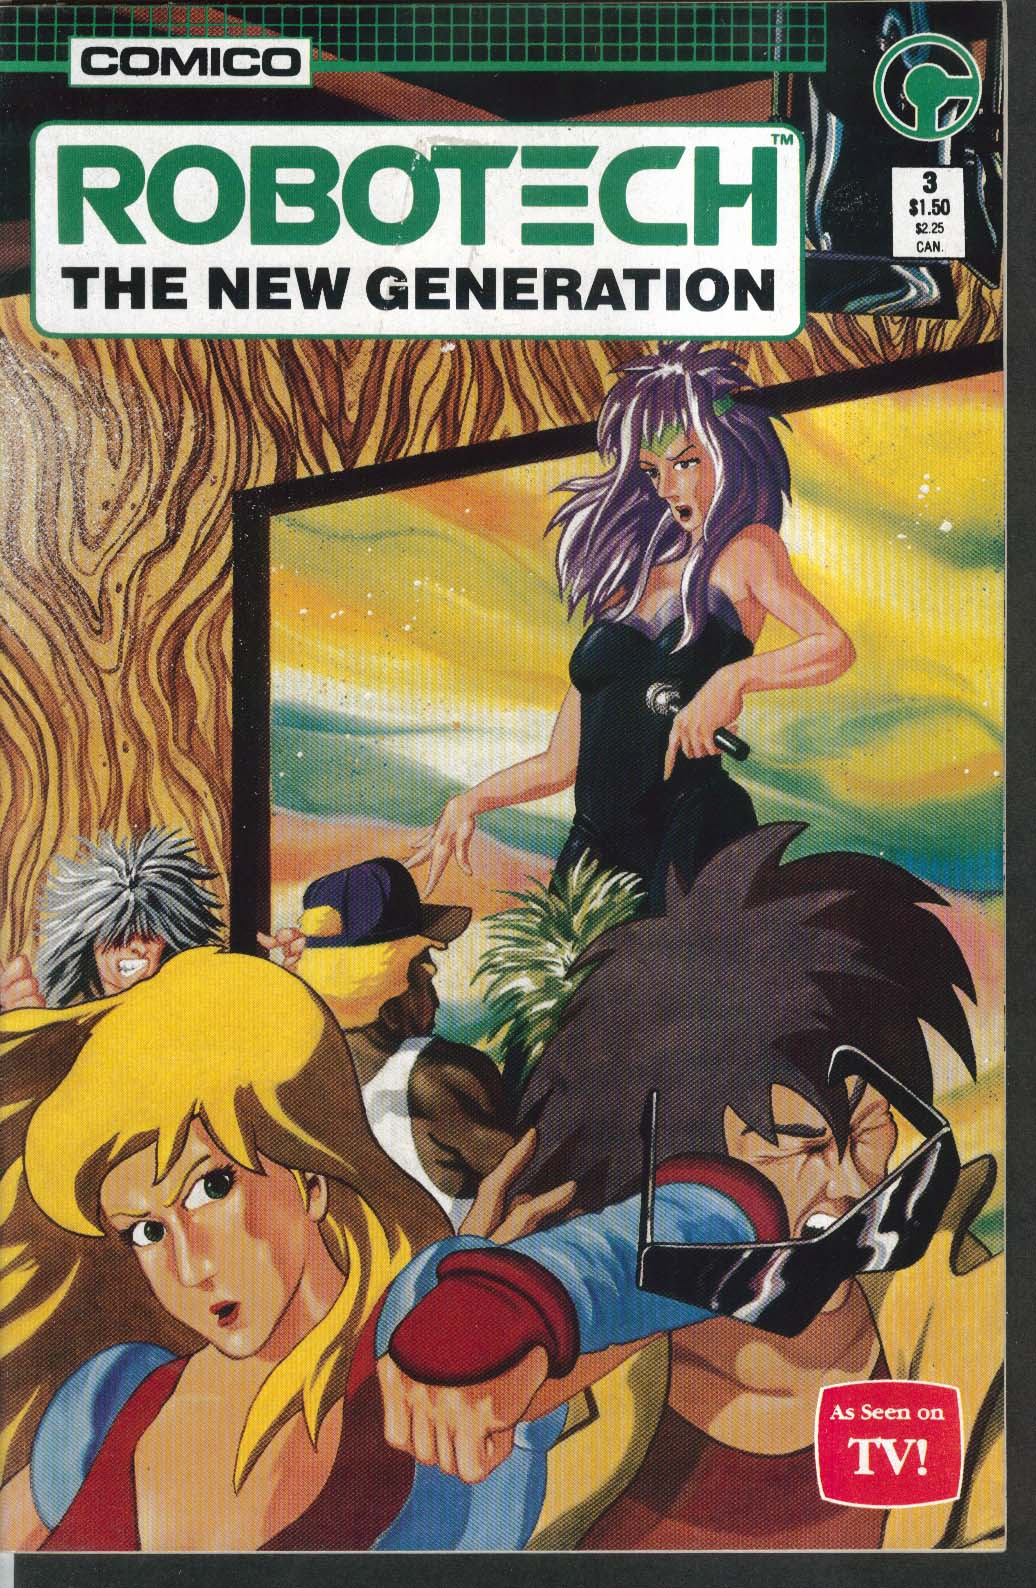 ROBOTECH New Generation #3 Comico comic book 10 1985